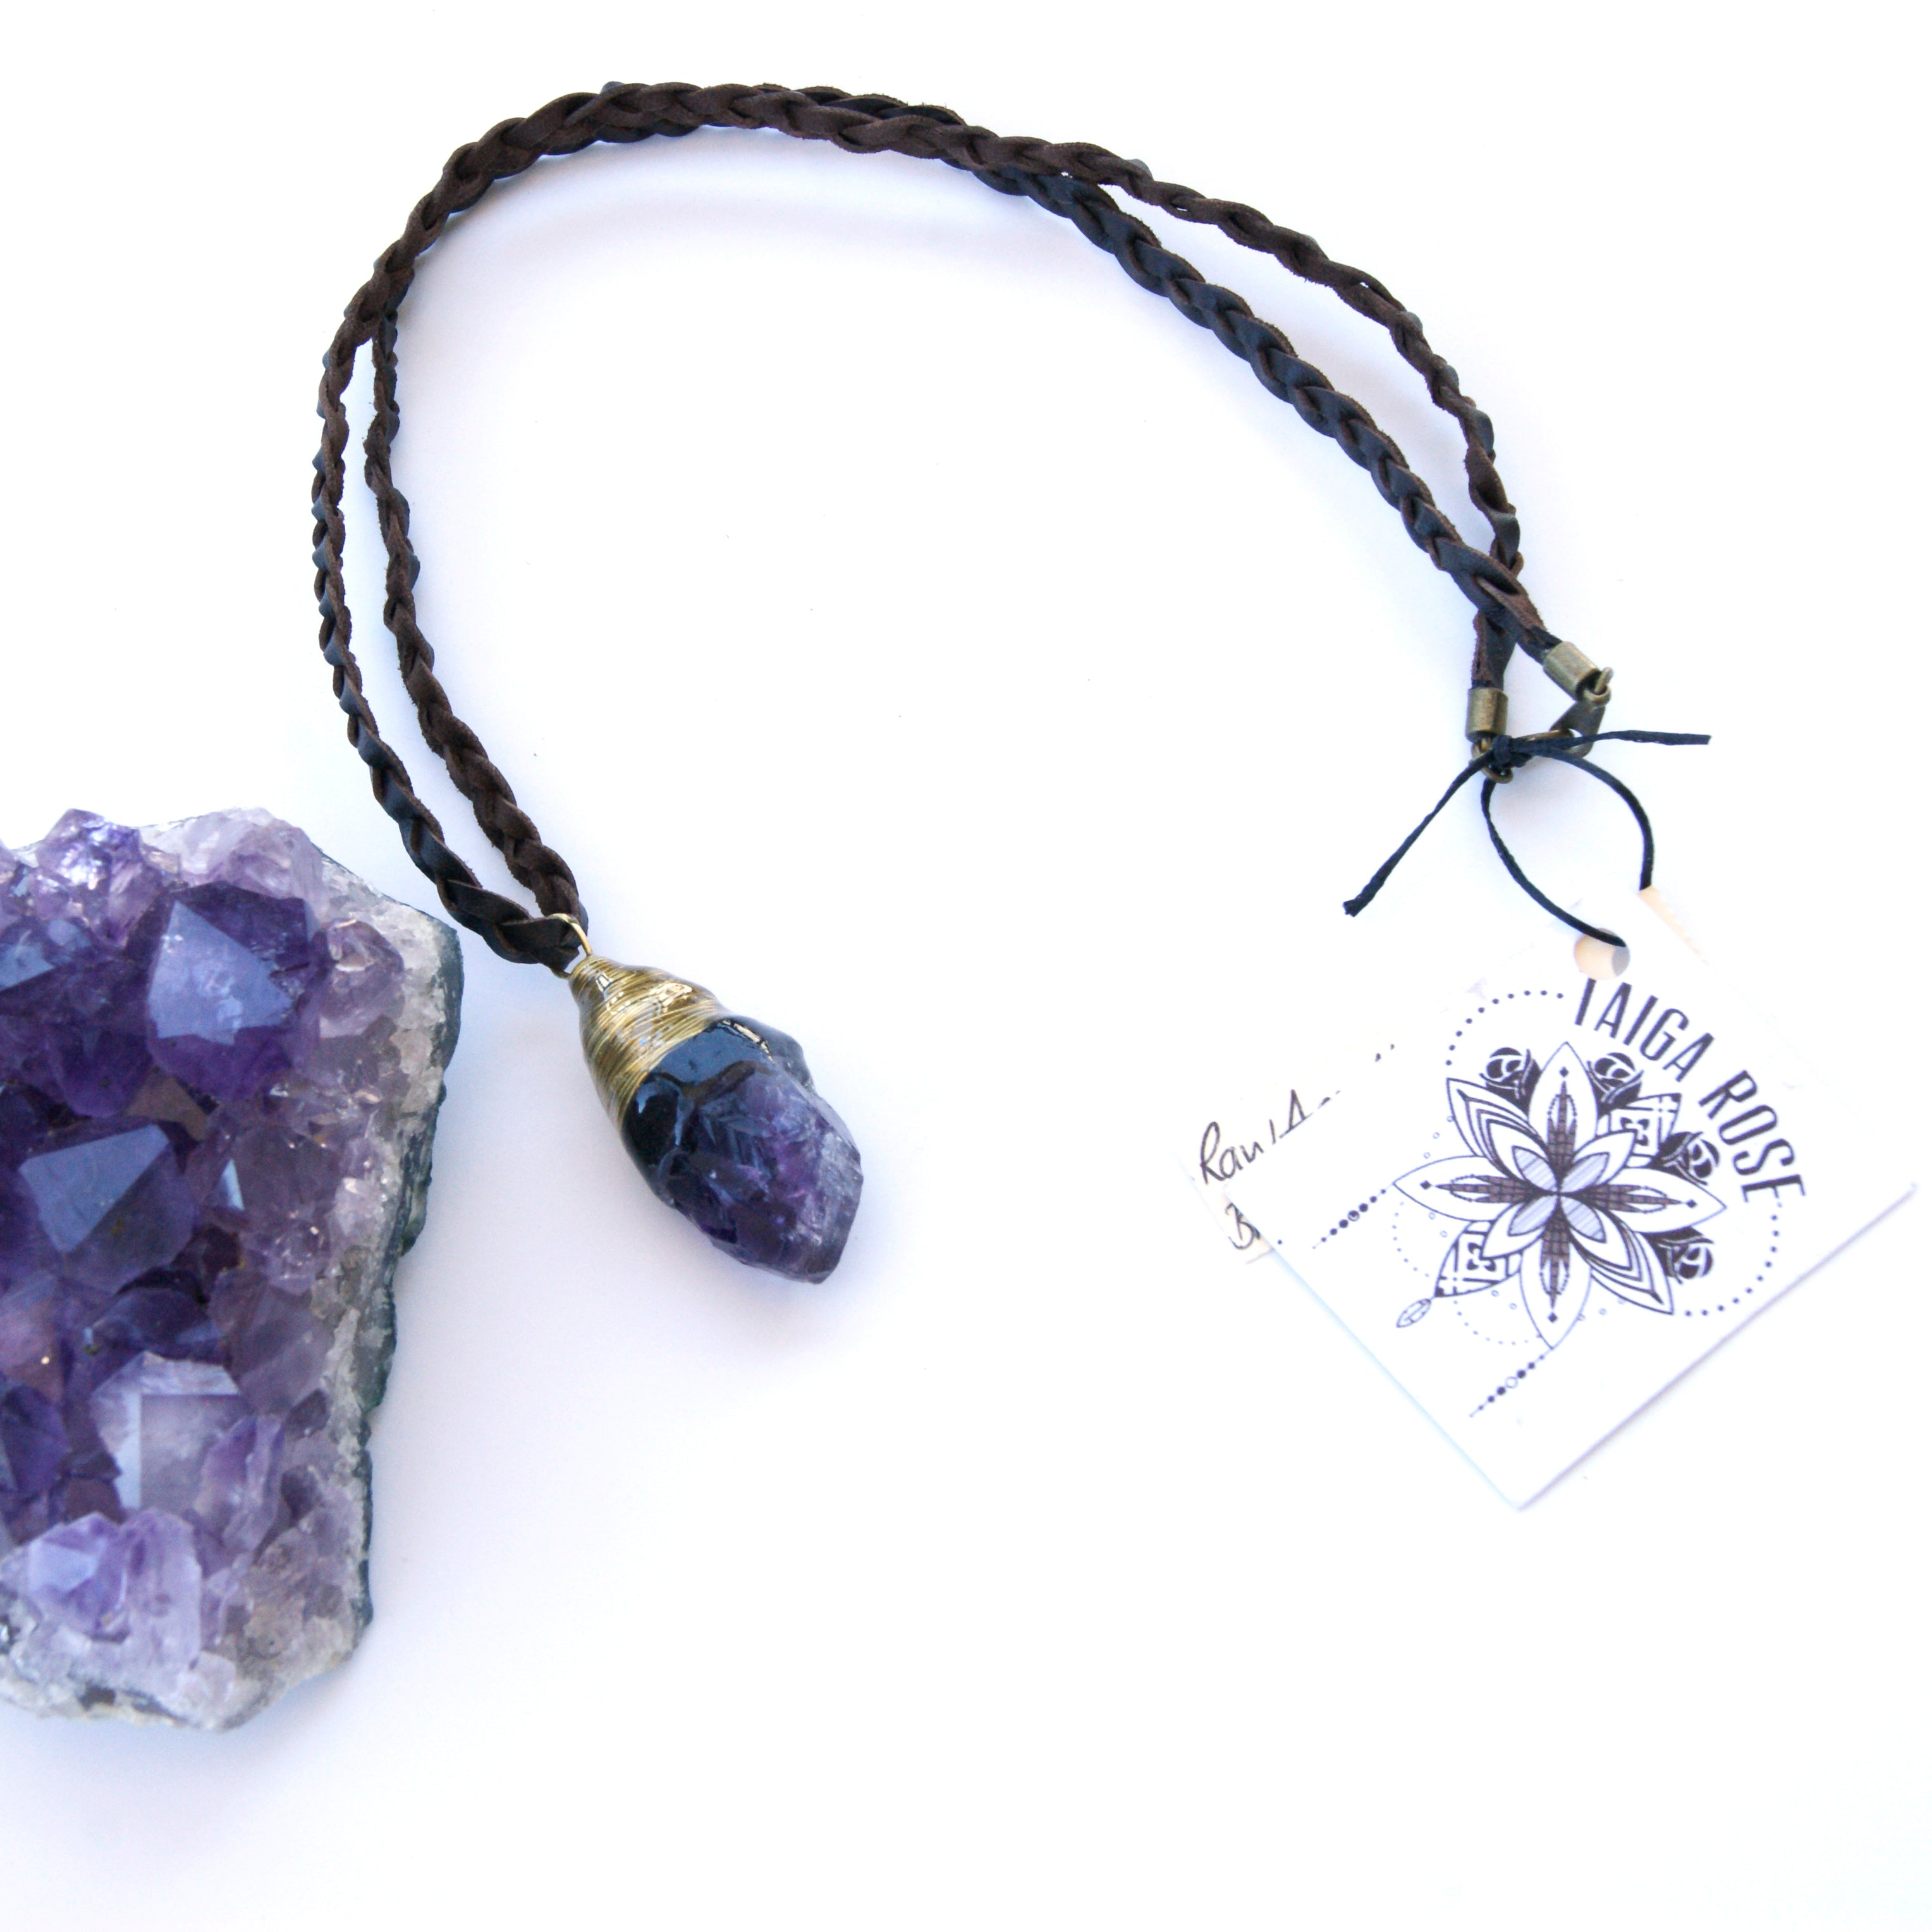 hippie jewelry stone amethyst birth purple february necklace gemstone healing natural ori raw details